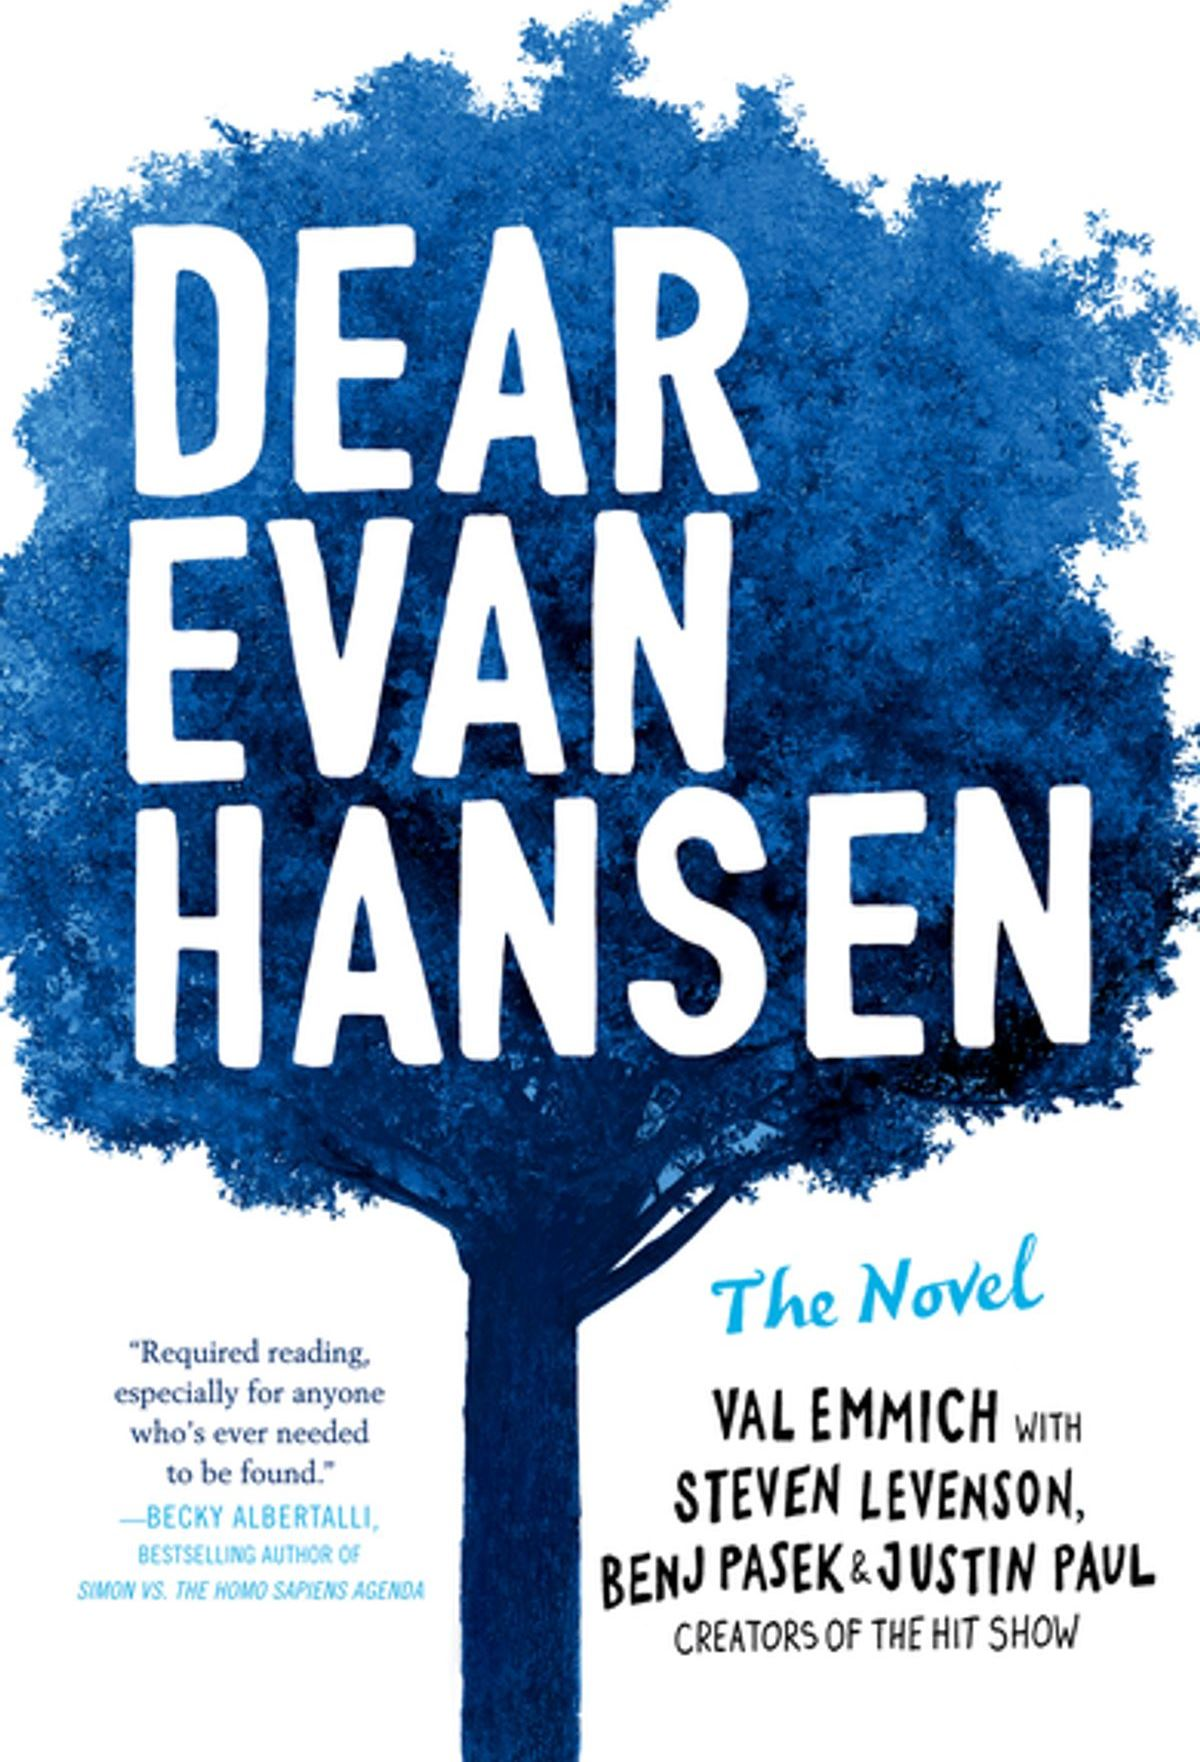 dear-evan-hansen-the-novel-free-preview-edition-the-first-three-chapters-1